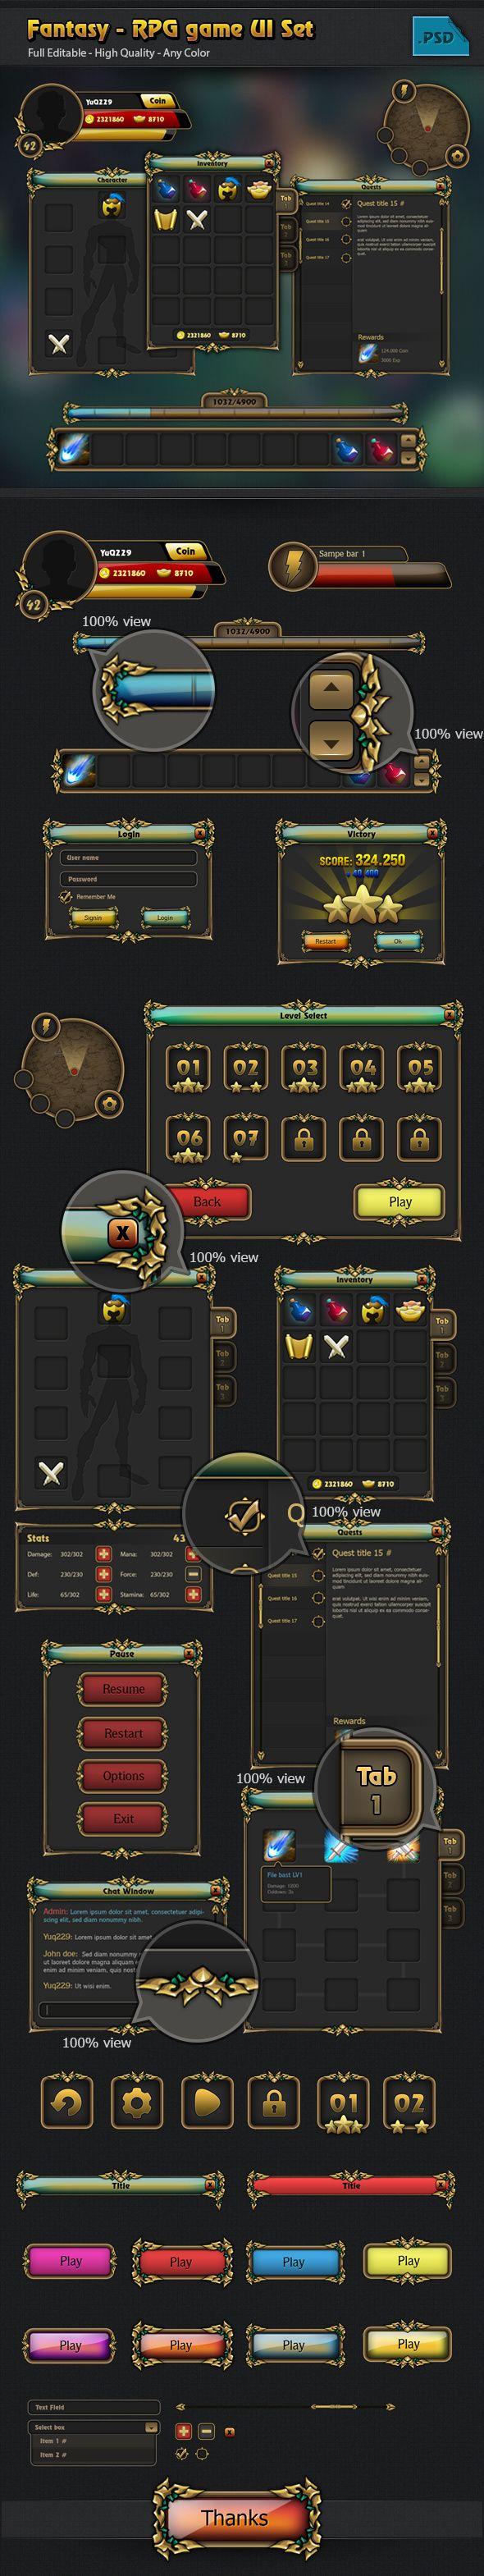 RPG game Gui set_by Ryan Do_from Behance (https://www.behance.net/Quy-dx)